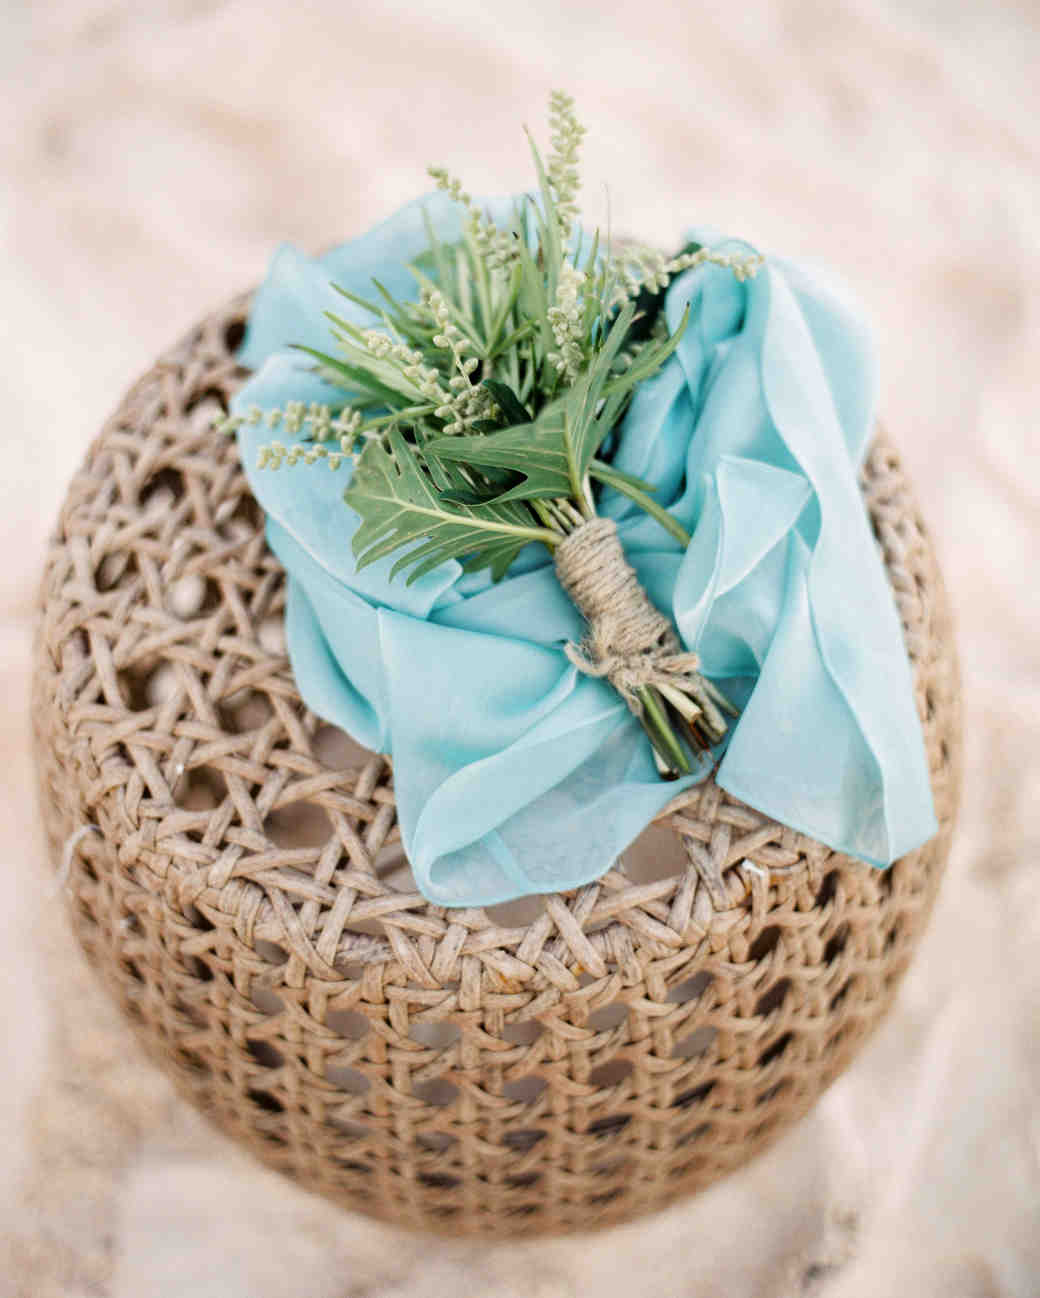 greenery bouquet wrapped in twine